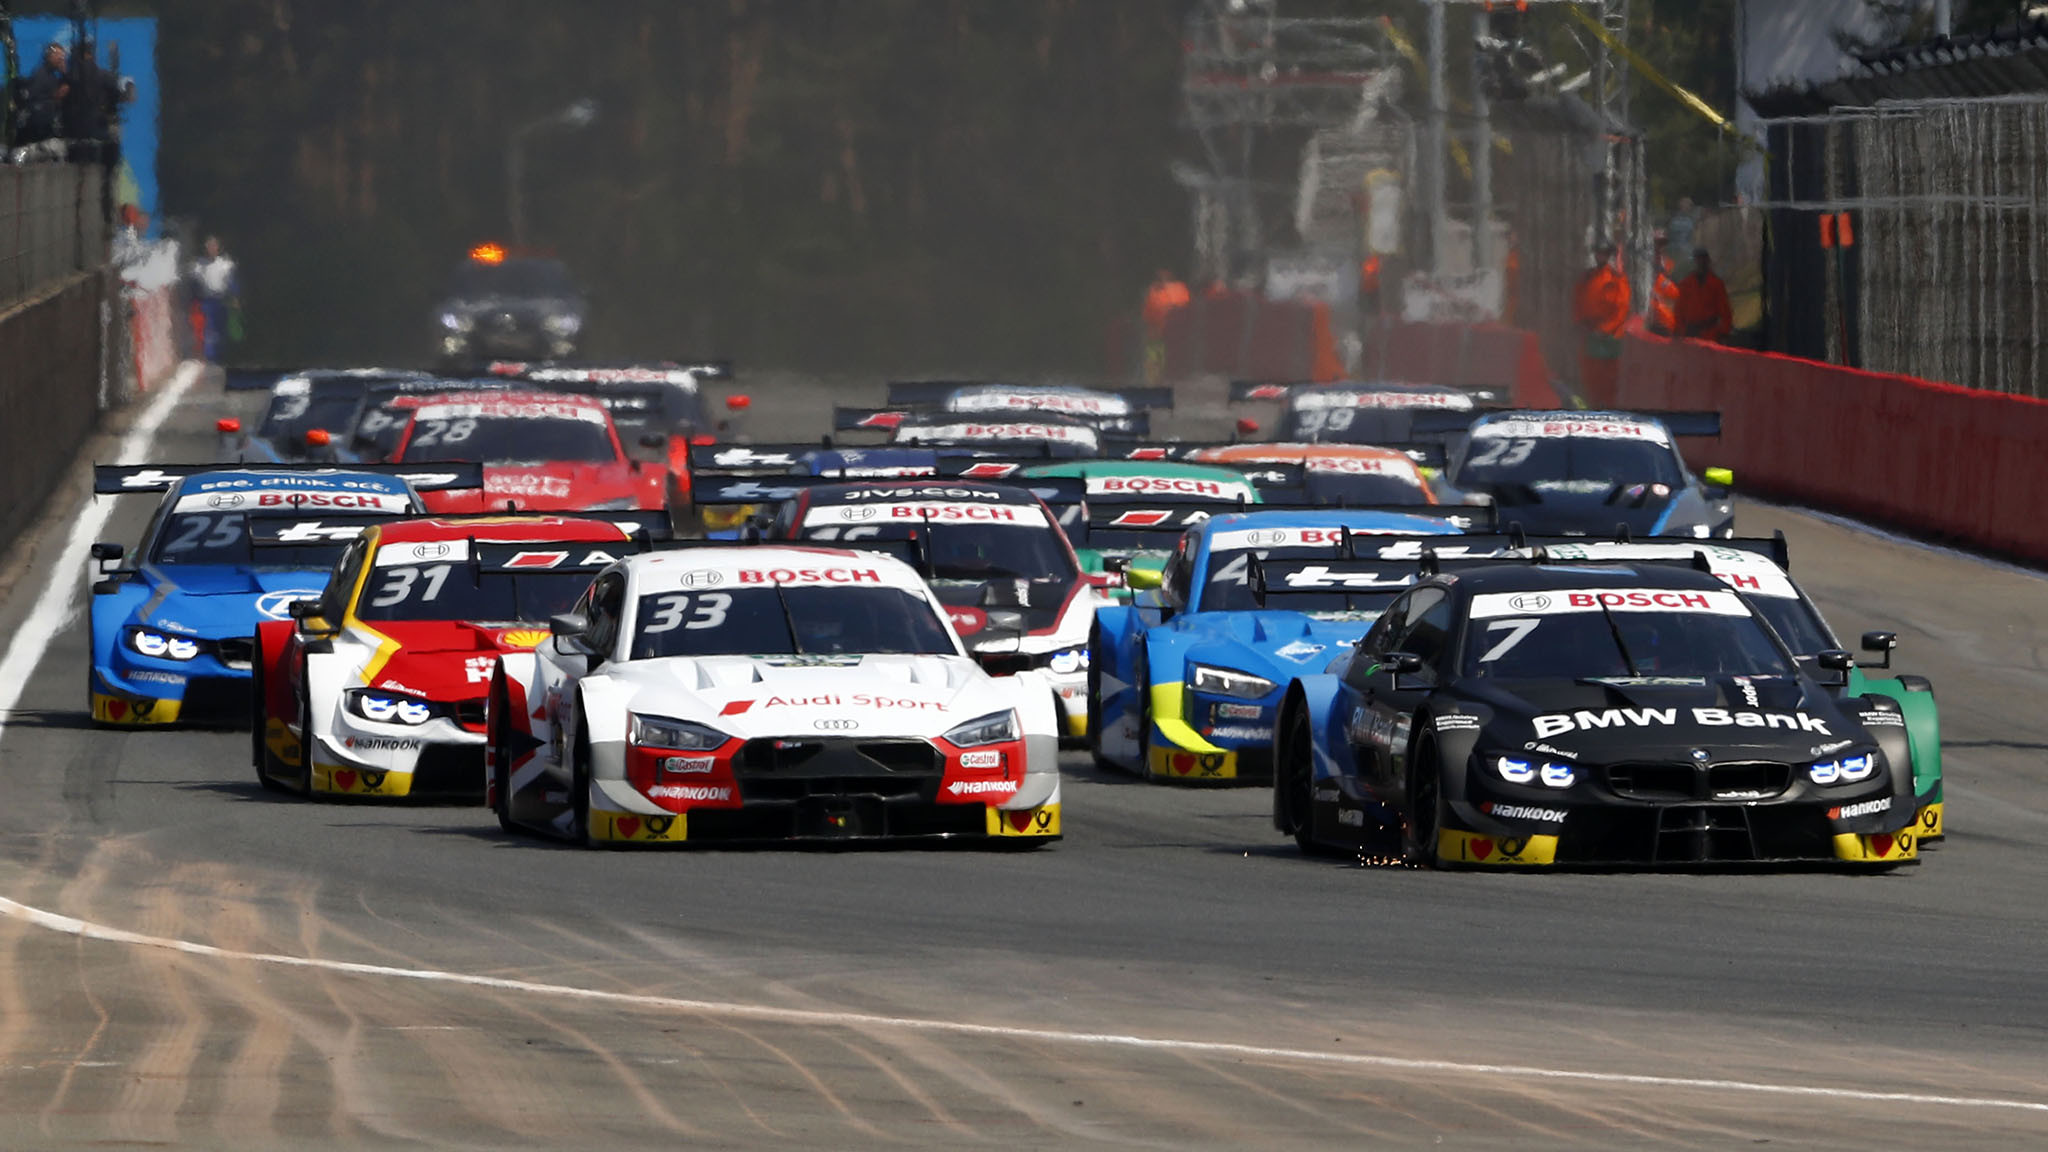 Anderstorp keen to secure 2021 DTM slot - TouringCarTimes